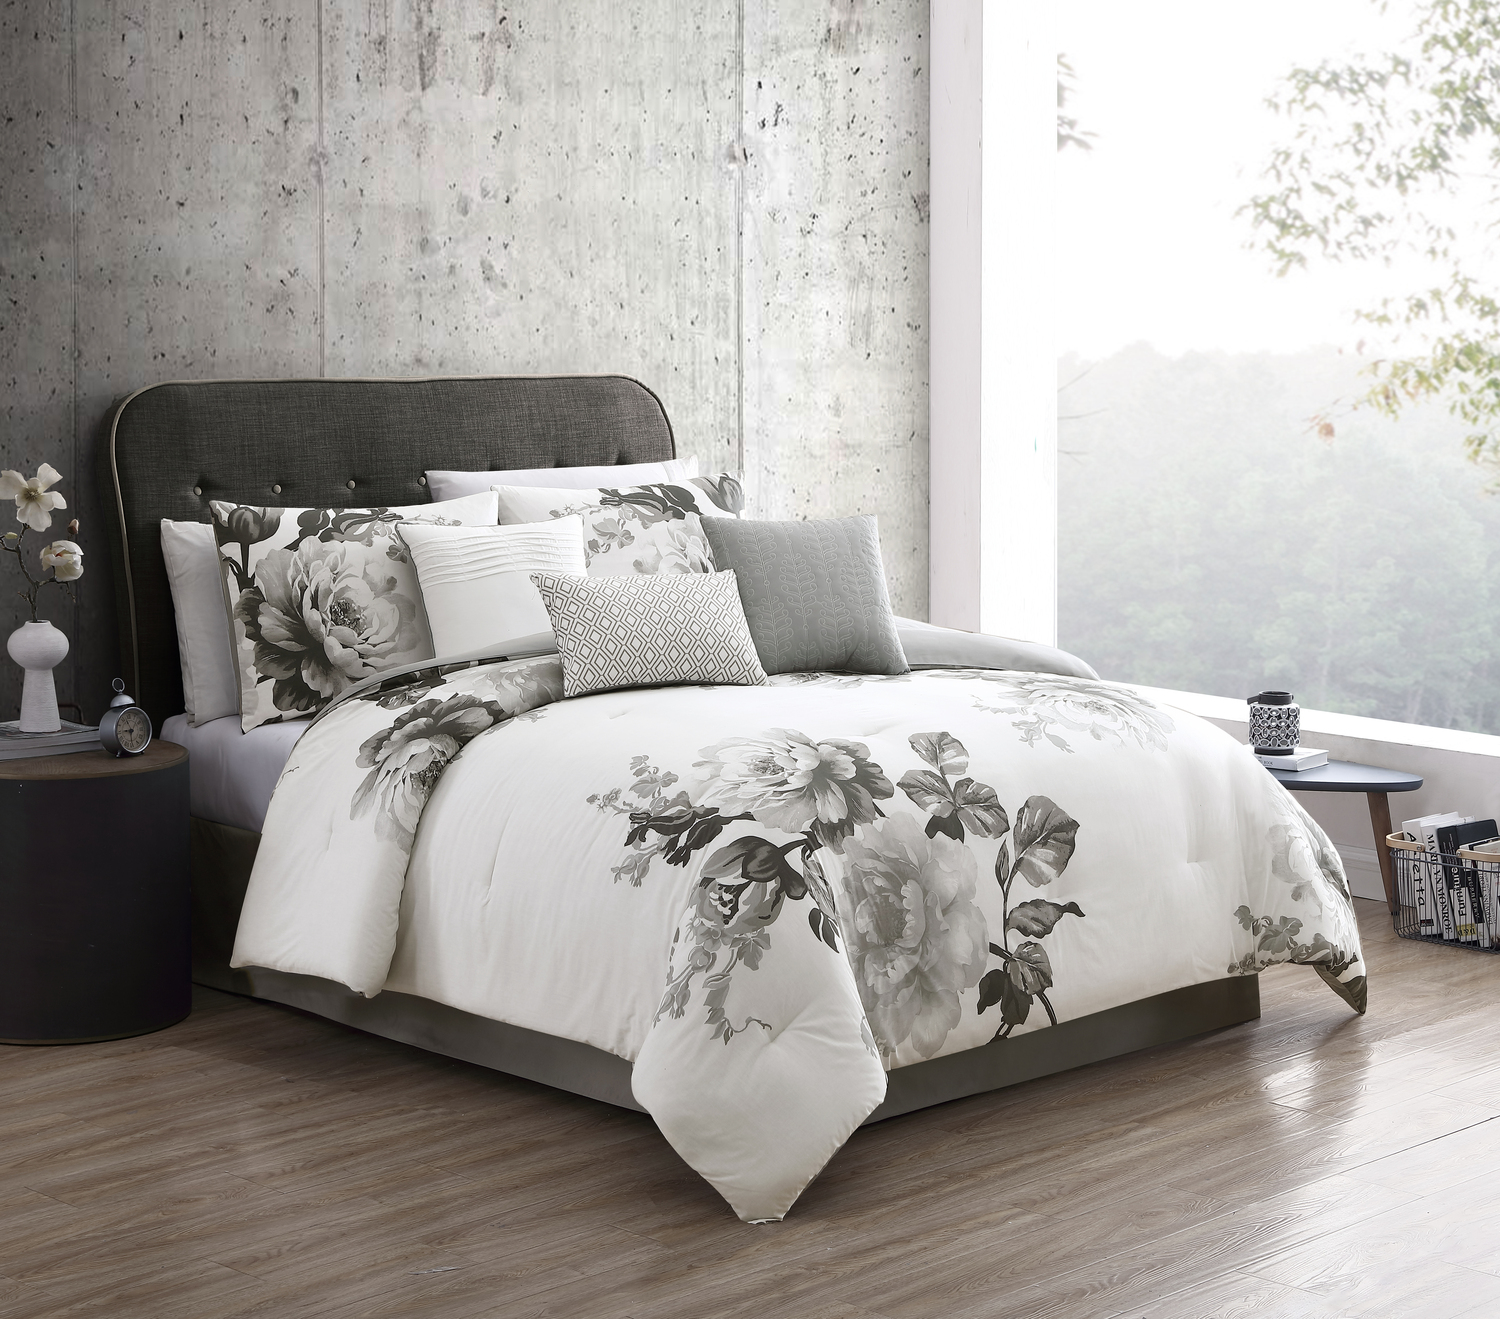 Ridgely Black by Riverbrook Home Bedding